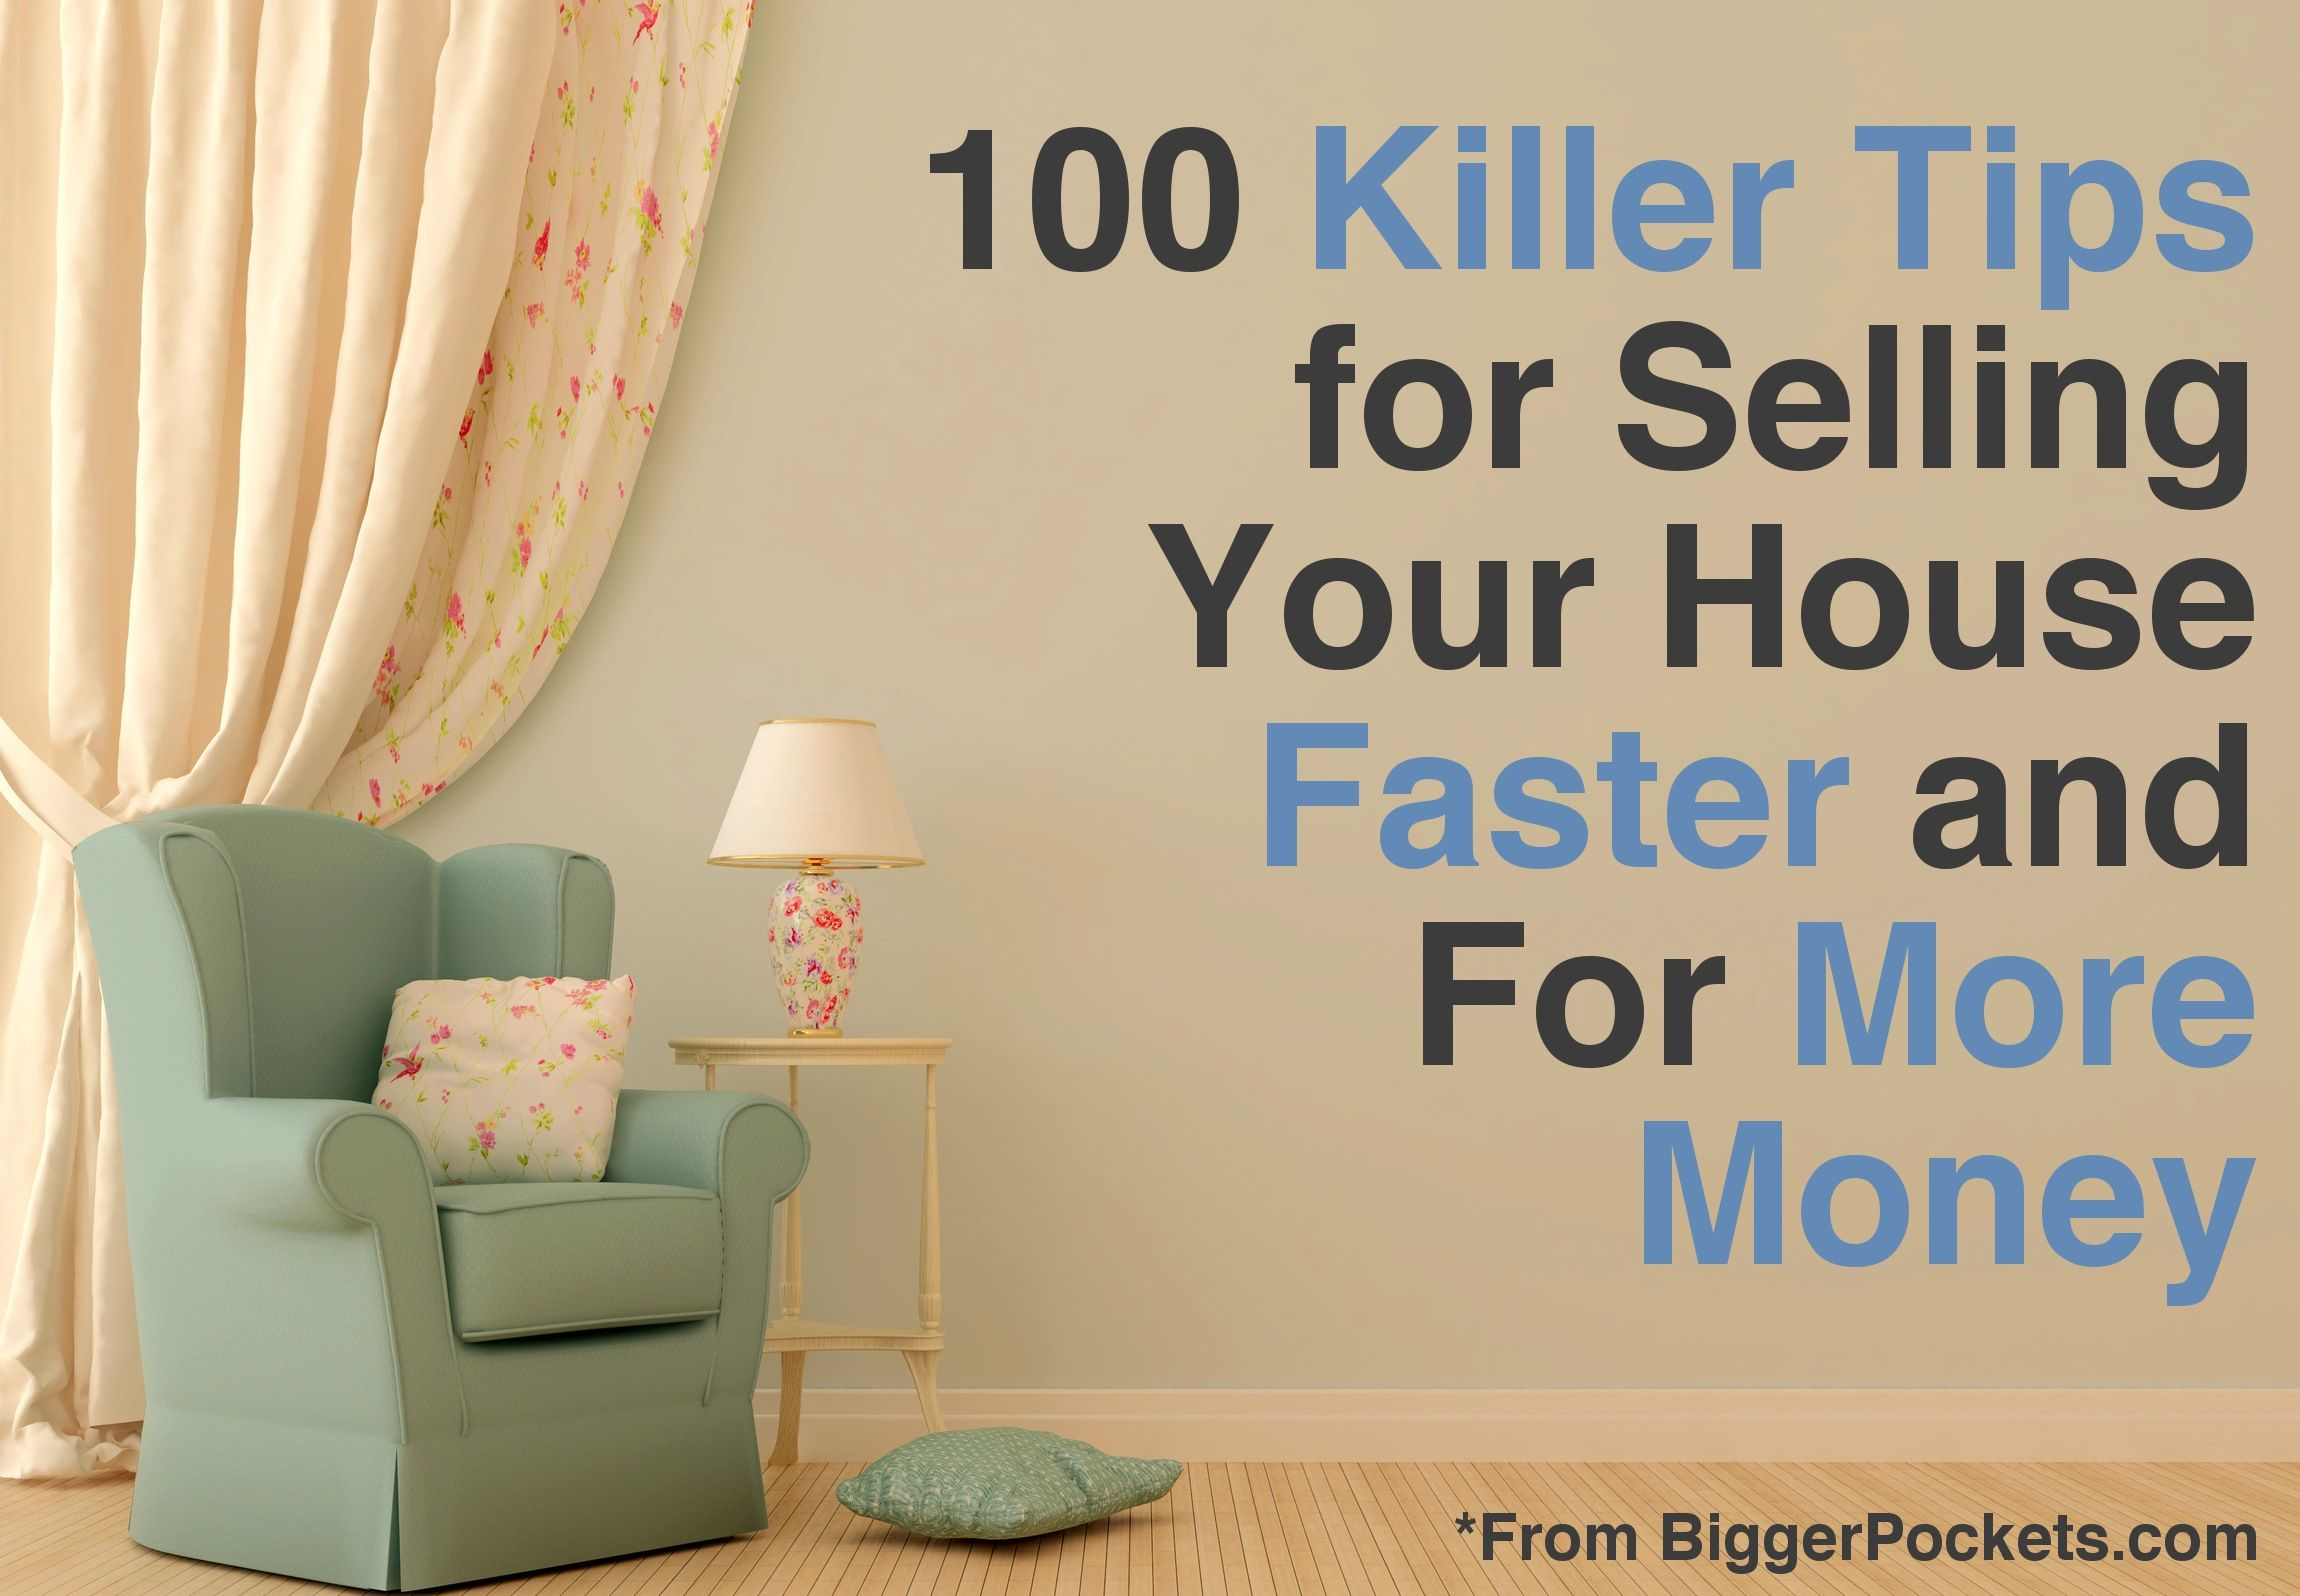 How to sell your house 100 tips to sell faster and for more money house money fast and investors - How to sell a house quicker five tricks that help ...